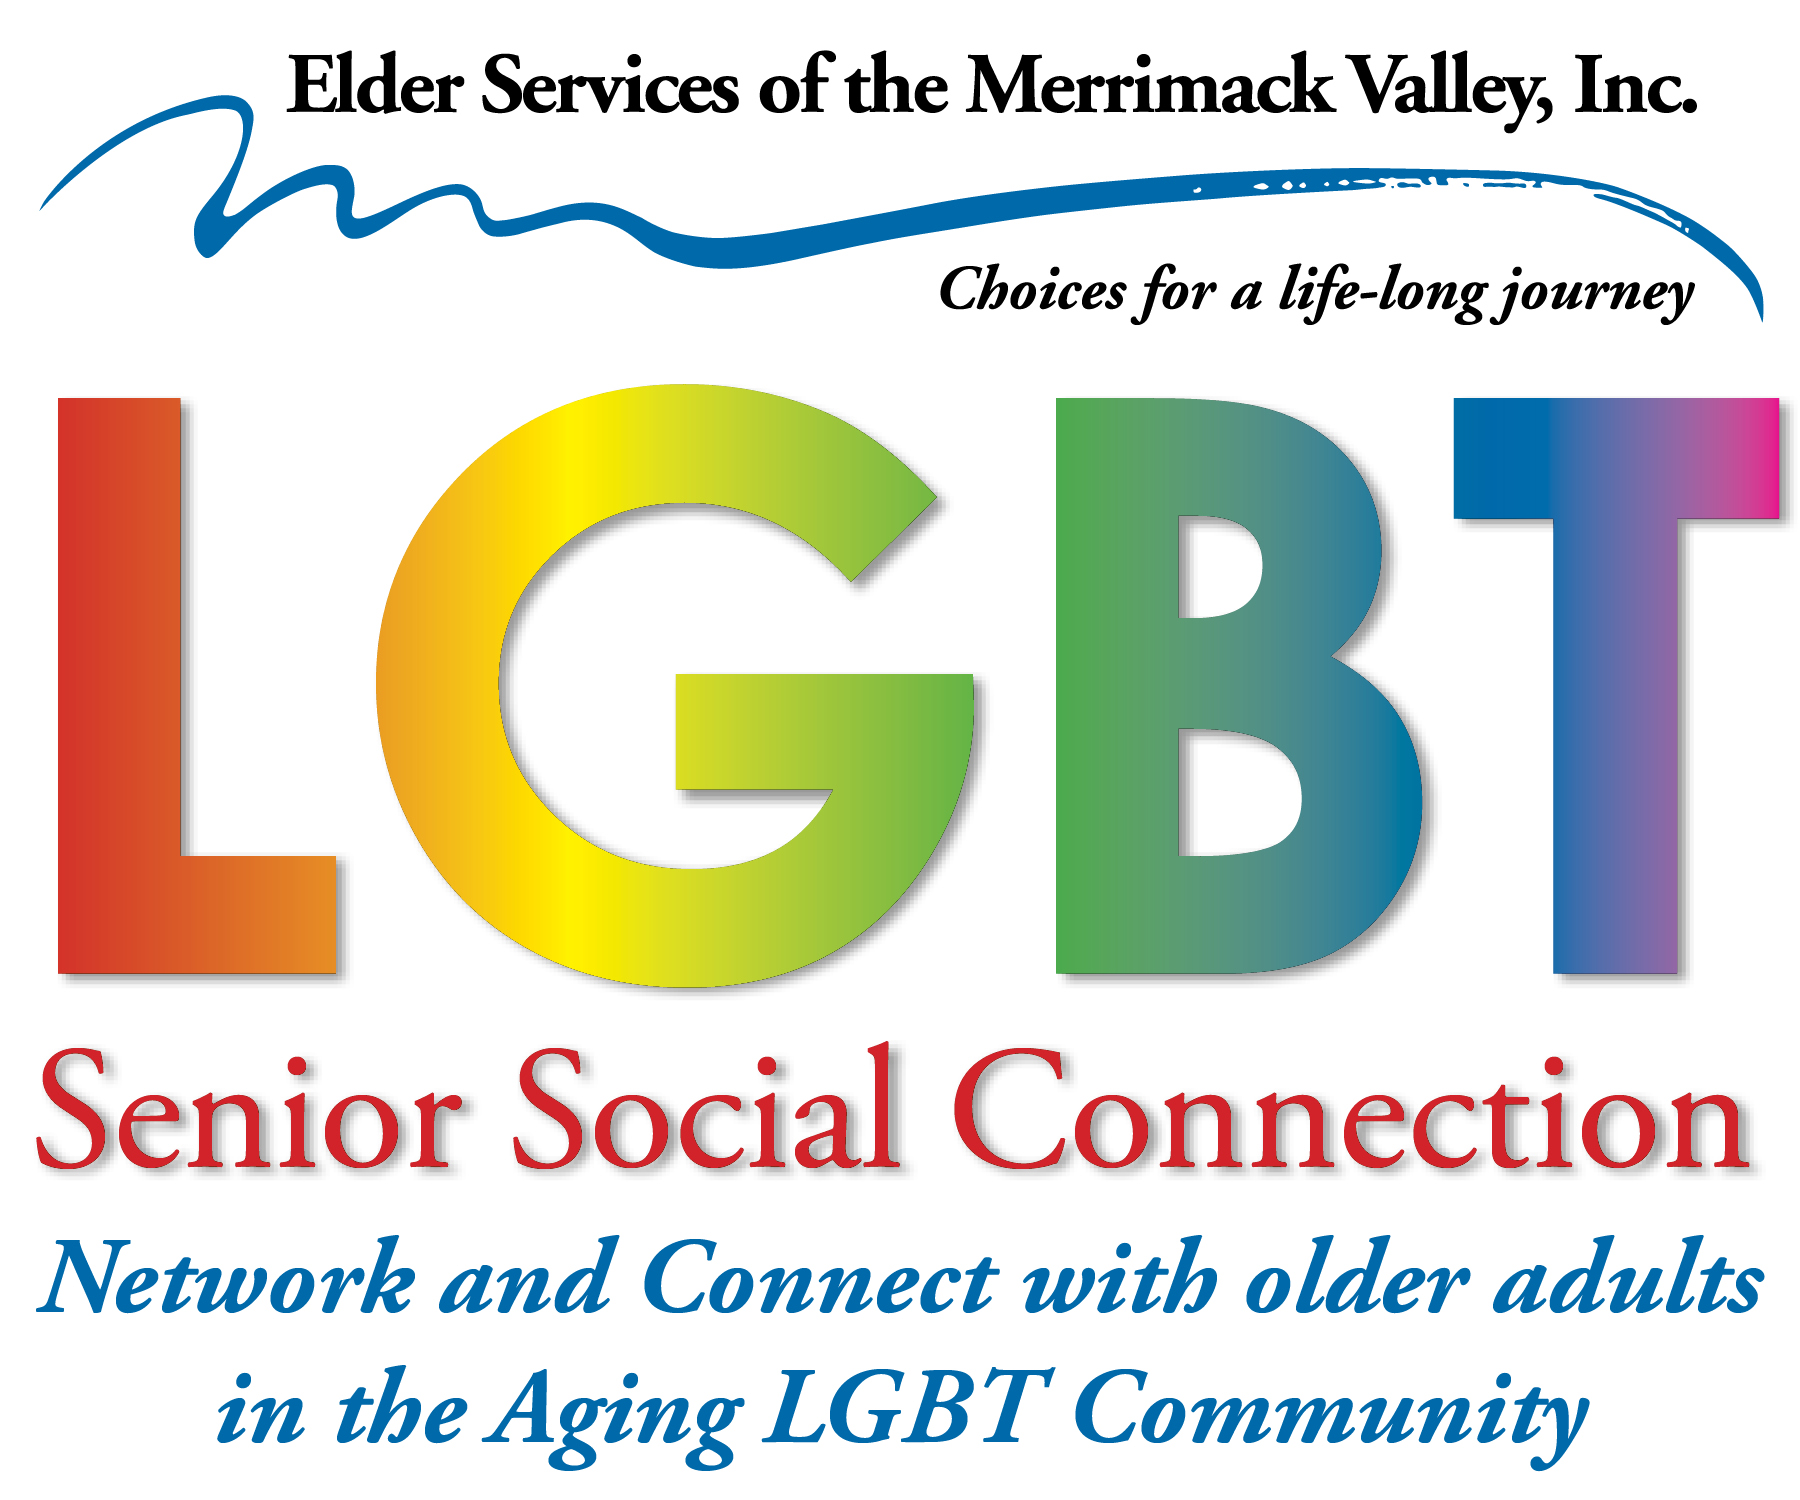 Elder Services of Merrimack Valley